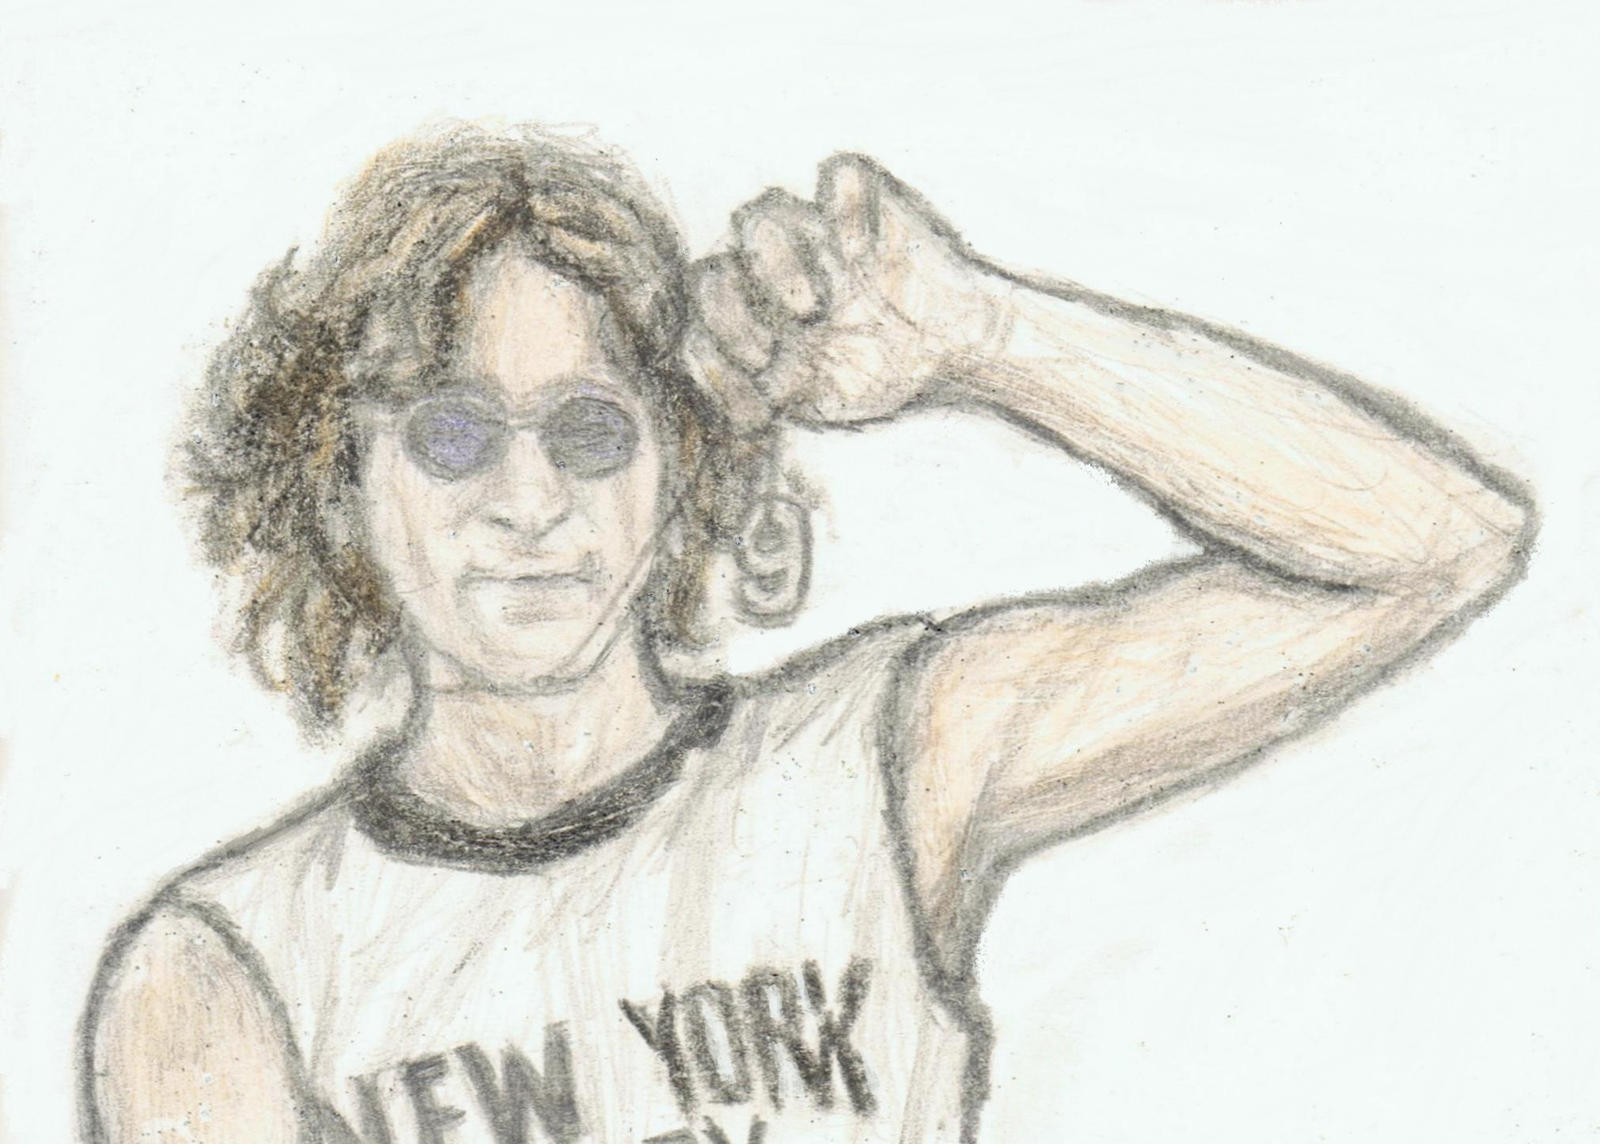 John Lennon with his number 9 pendant by gagambo